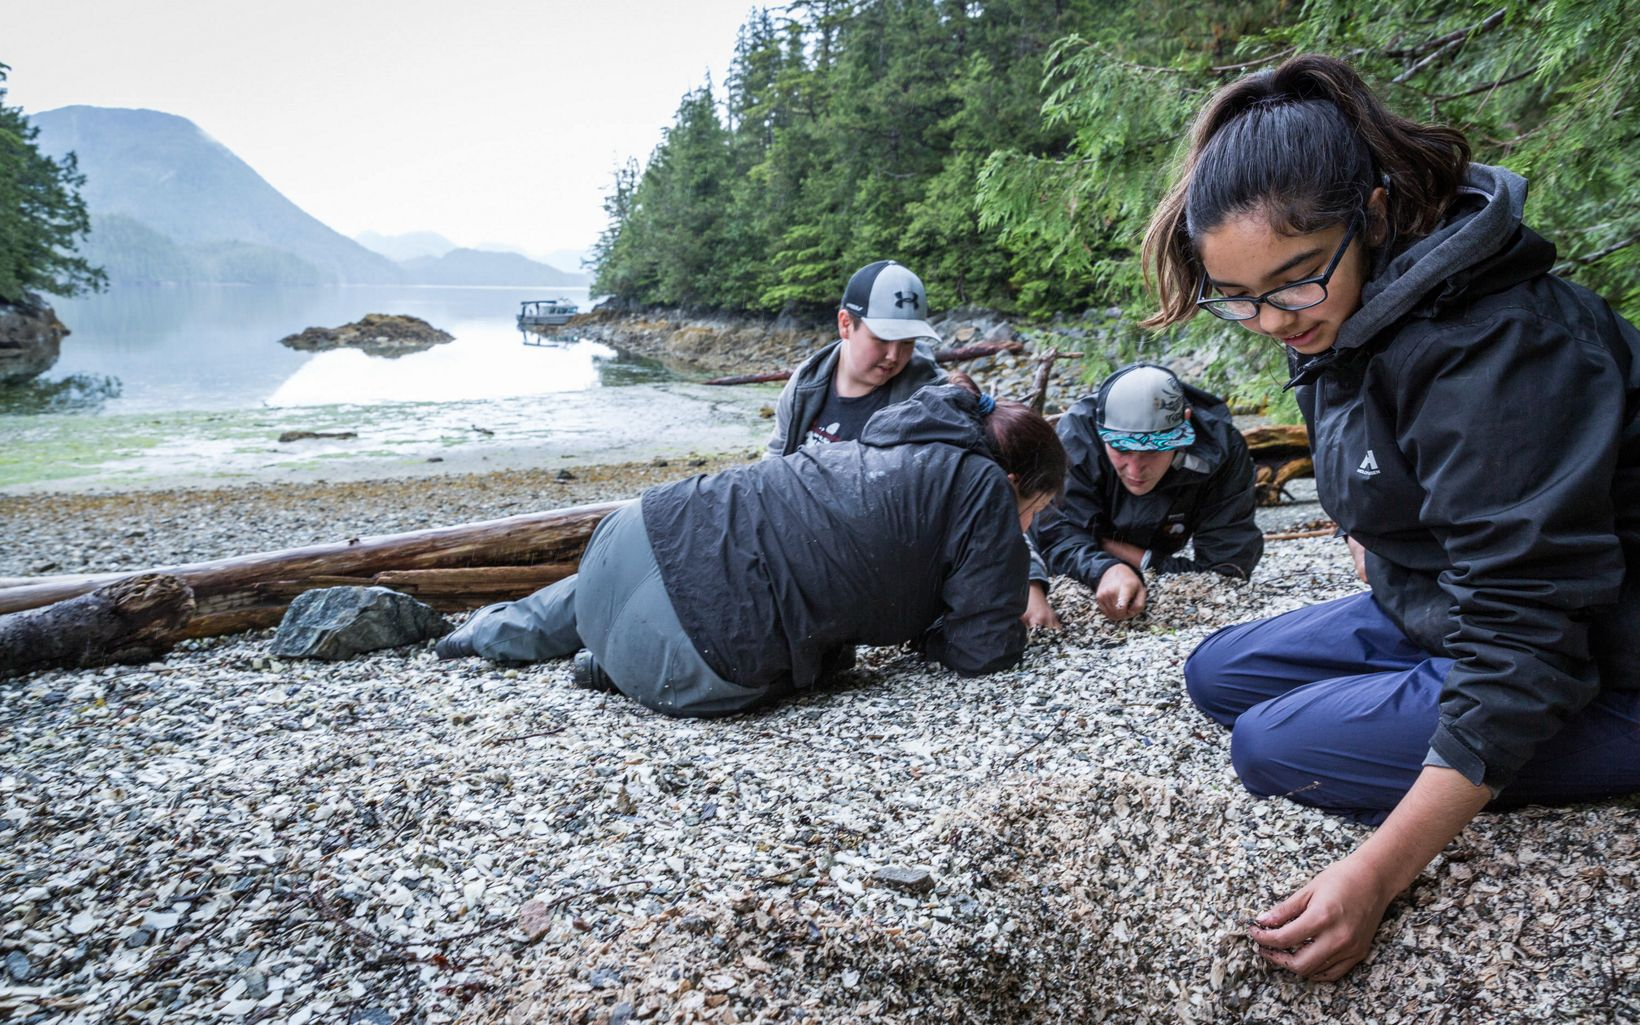 SEAS interns dig through an ancient shell midden site looking for artifacts in the Kitasoo/Xai'xais Nation of the Great Bear Rainforest.